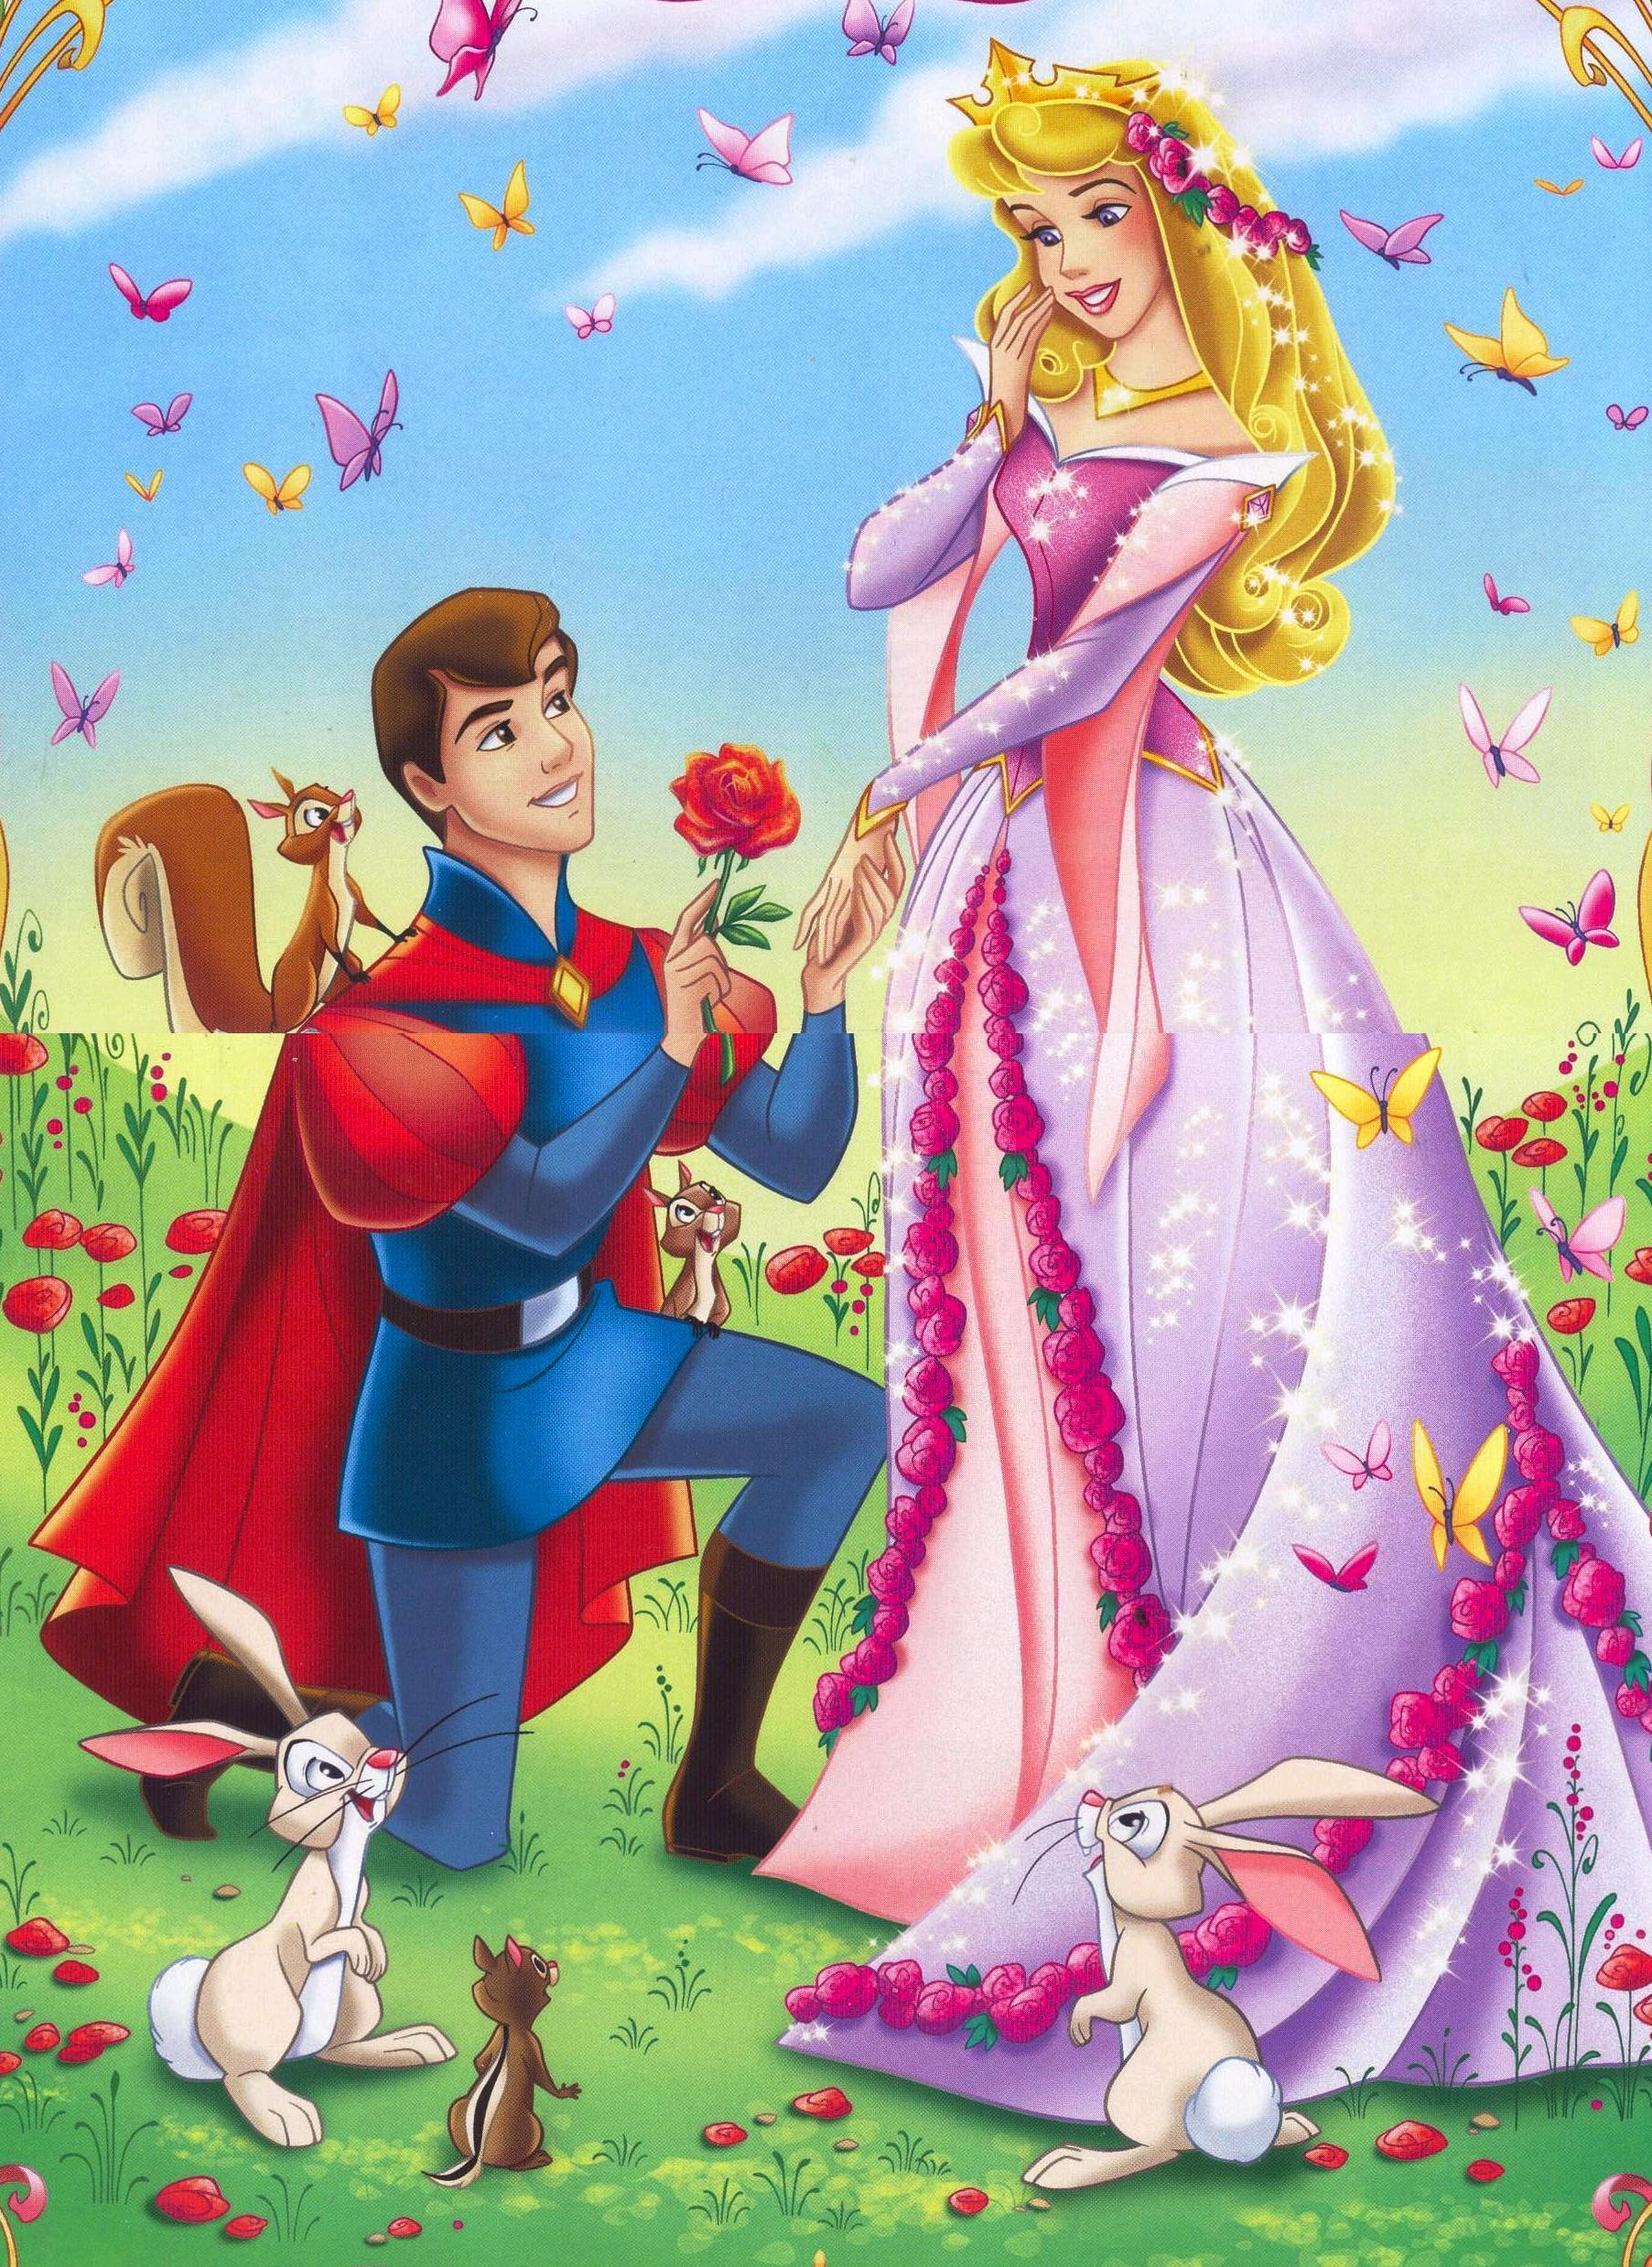 Princess Aurora and Prince Cartoon